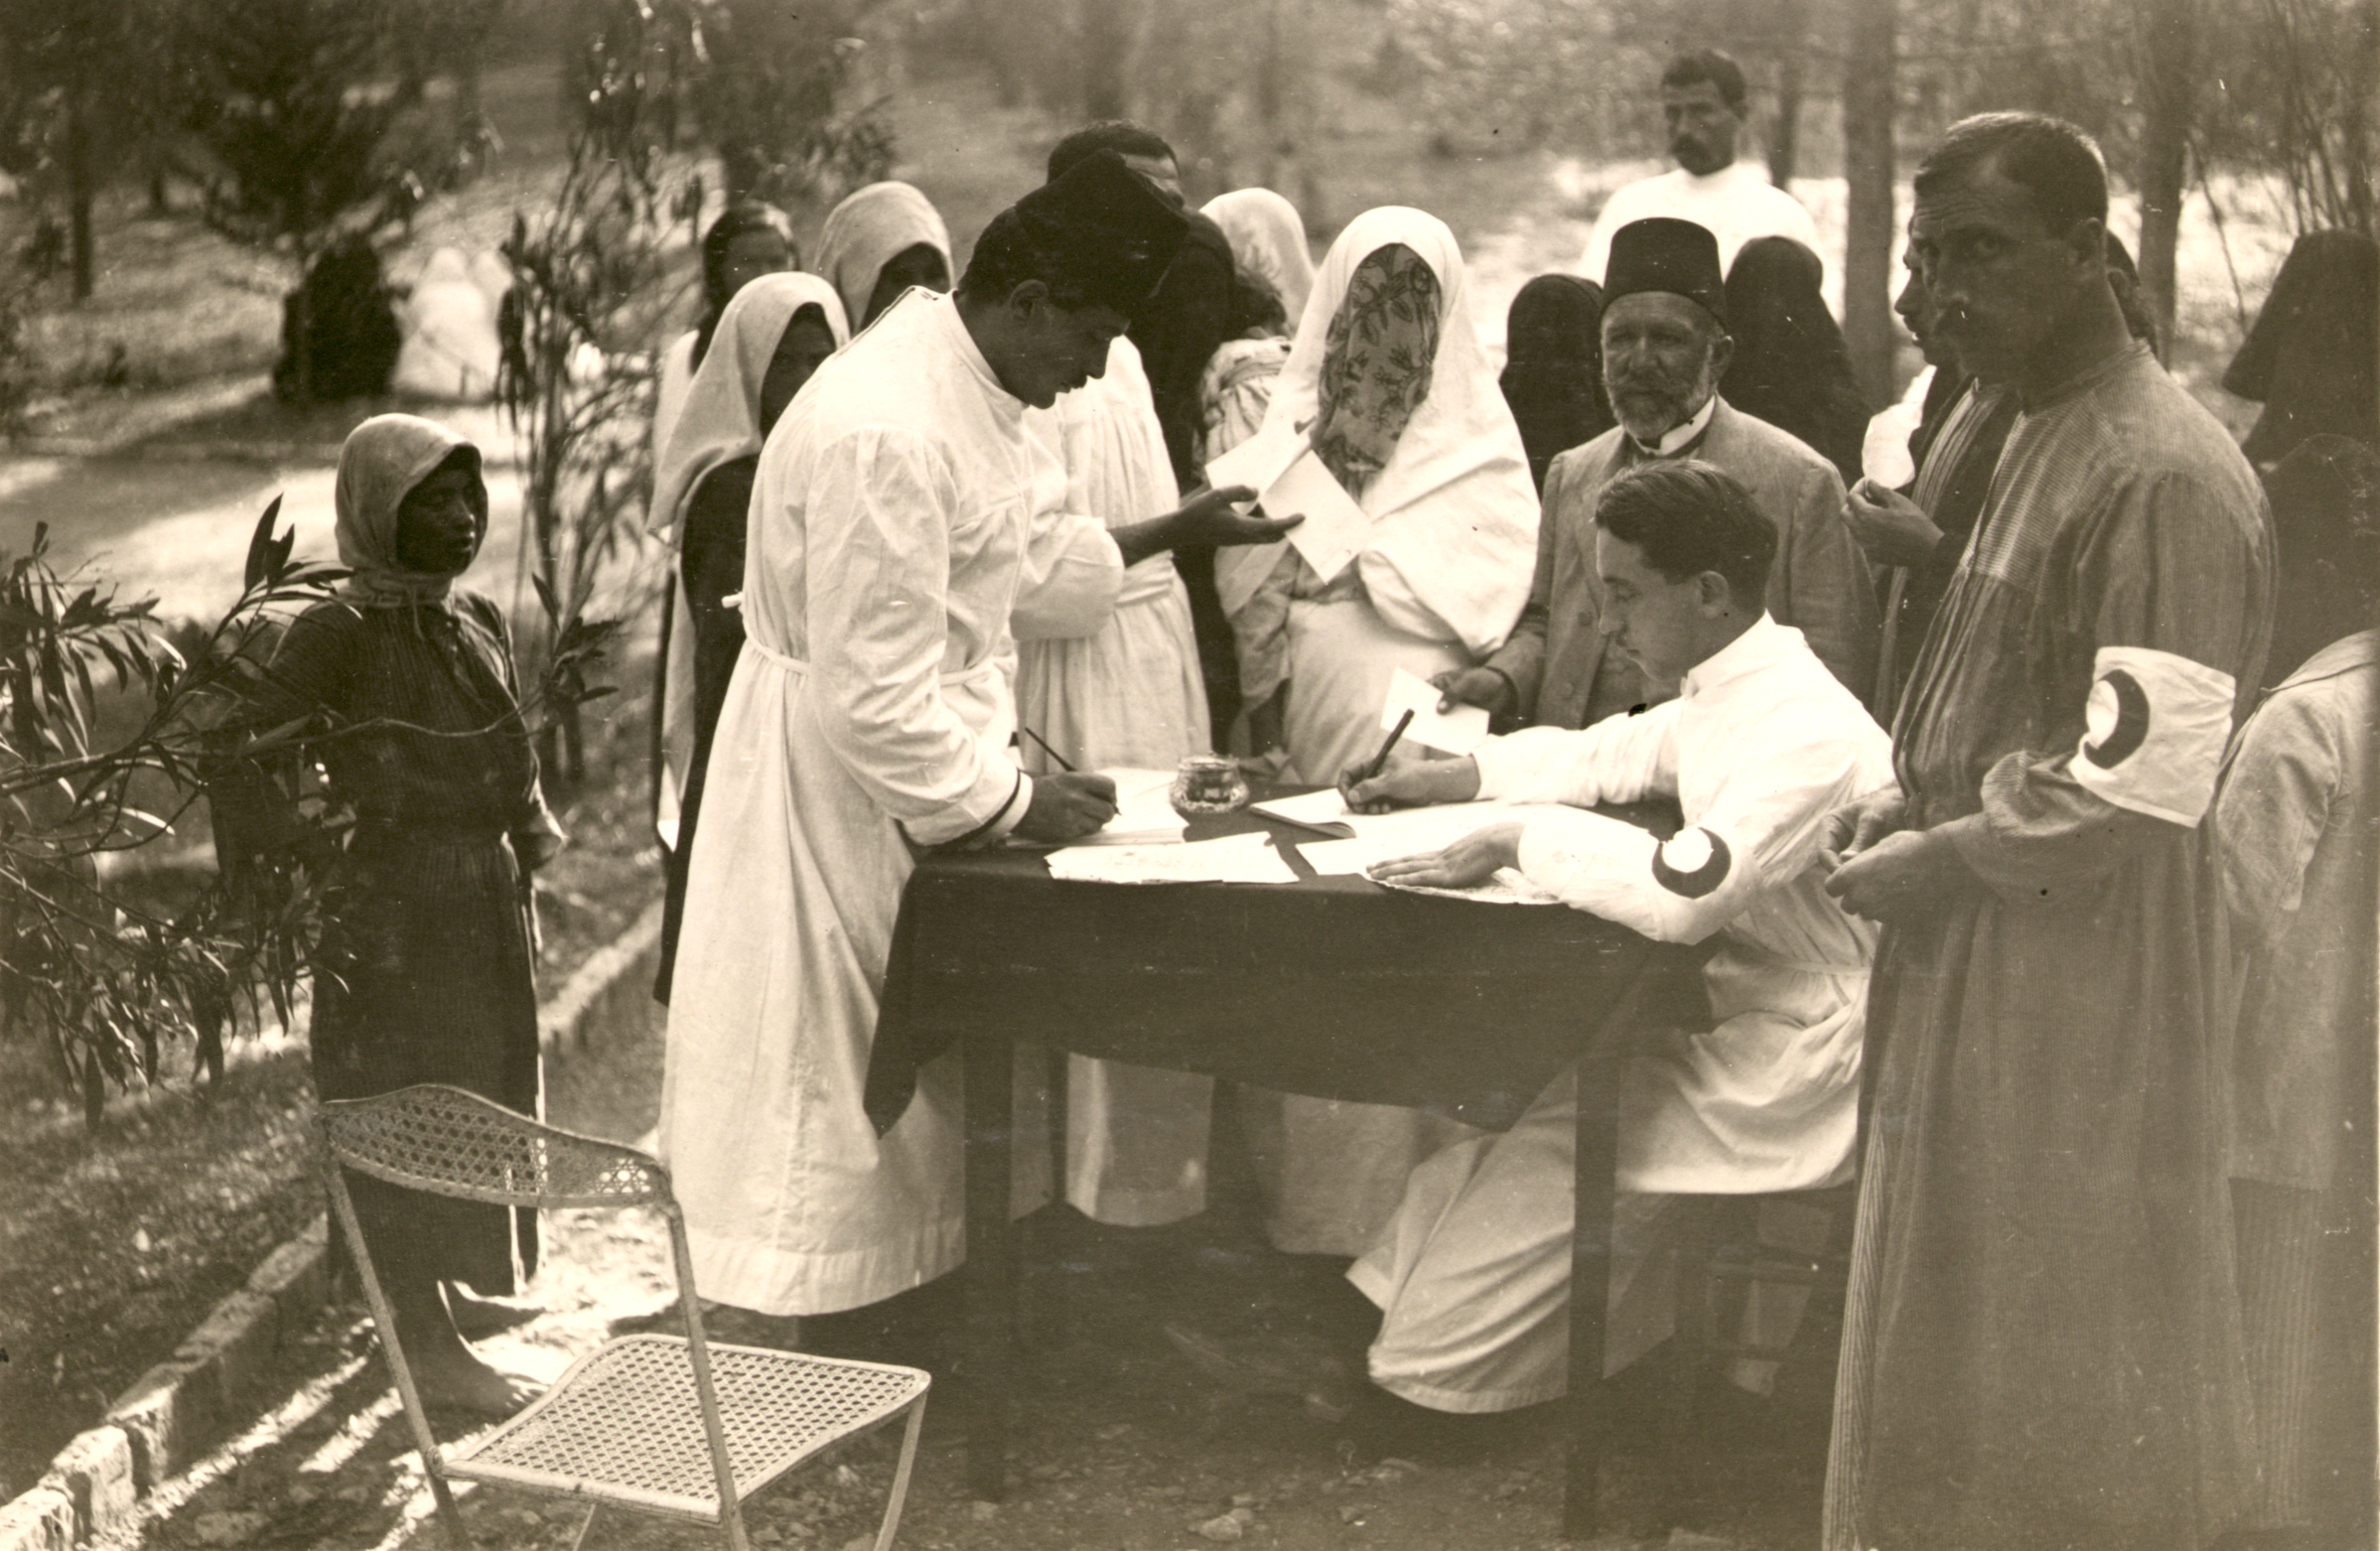 Red Crescent Relief Efforts in Jerusalem c1917 (source: US Library of Congress)